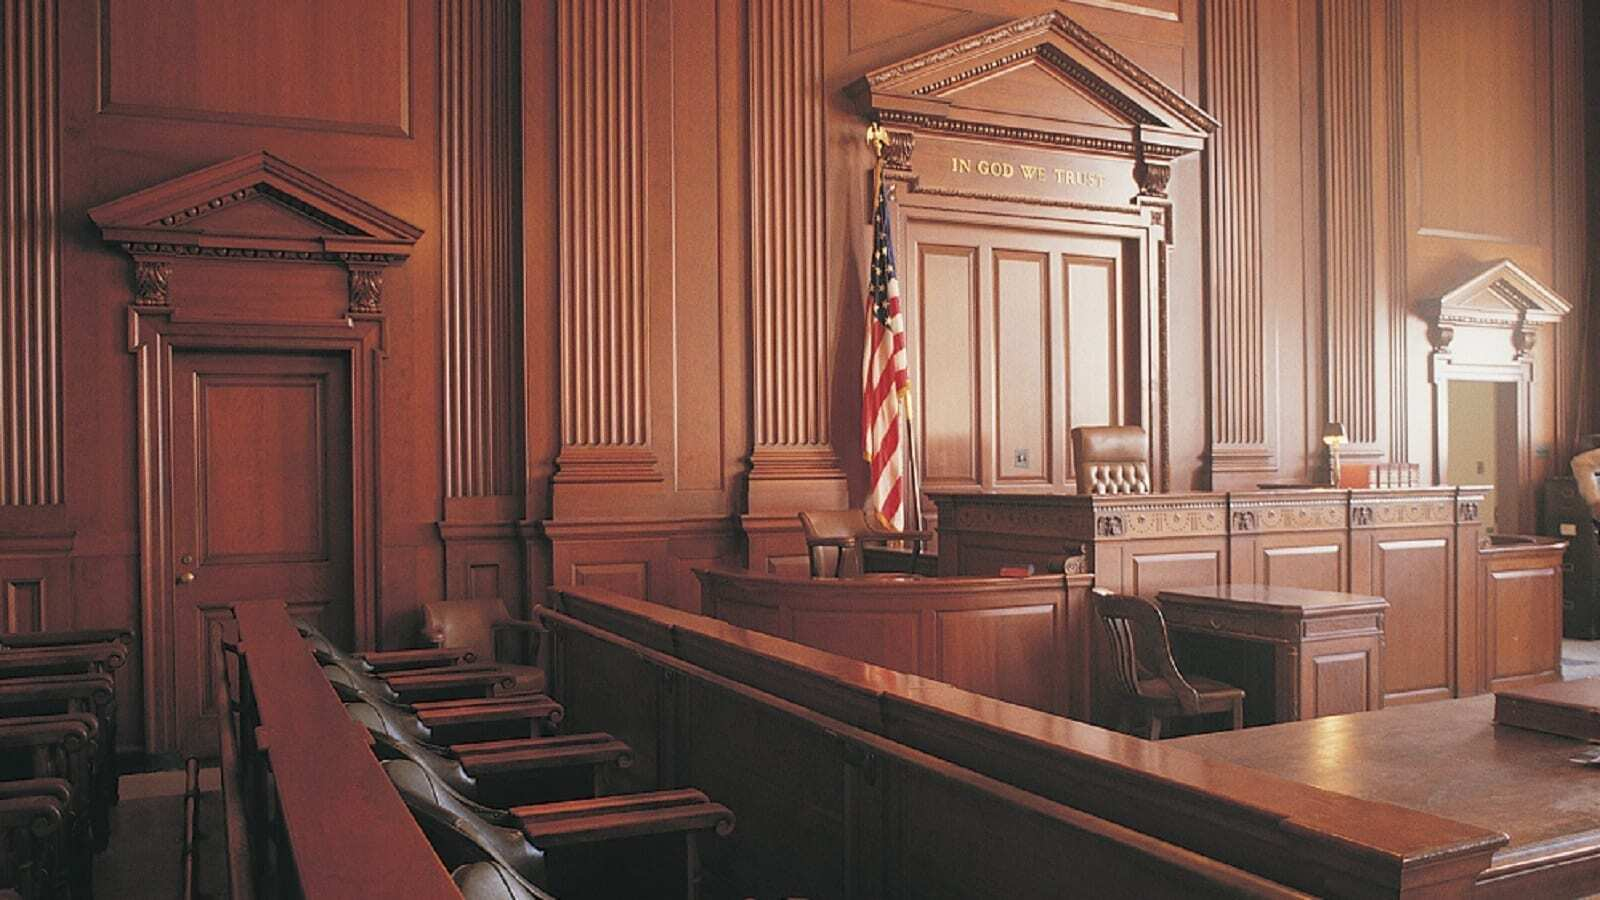 Brown interior of Court room. Count on Judicial Research for all your Court Services from Electronic to In Person Filing, Subpoenas, in Bankruptcy, Circuit, & Federal US District Courts